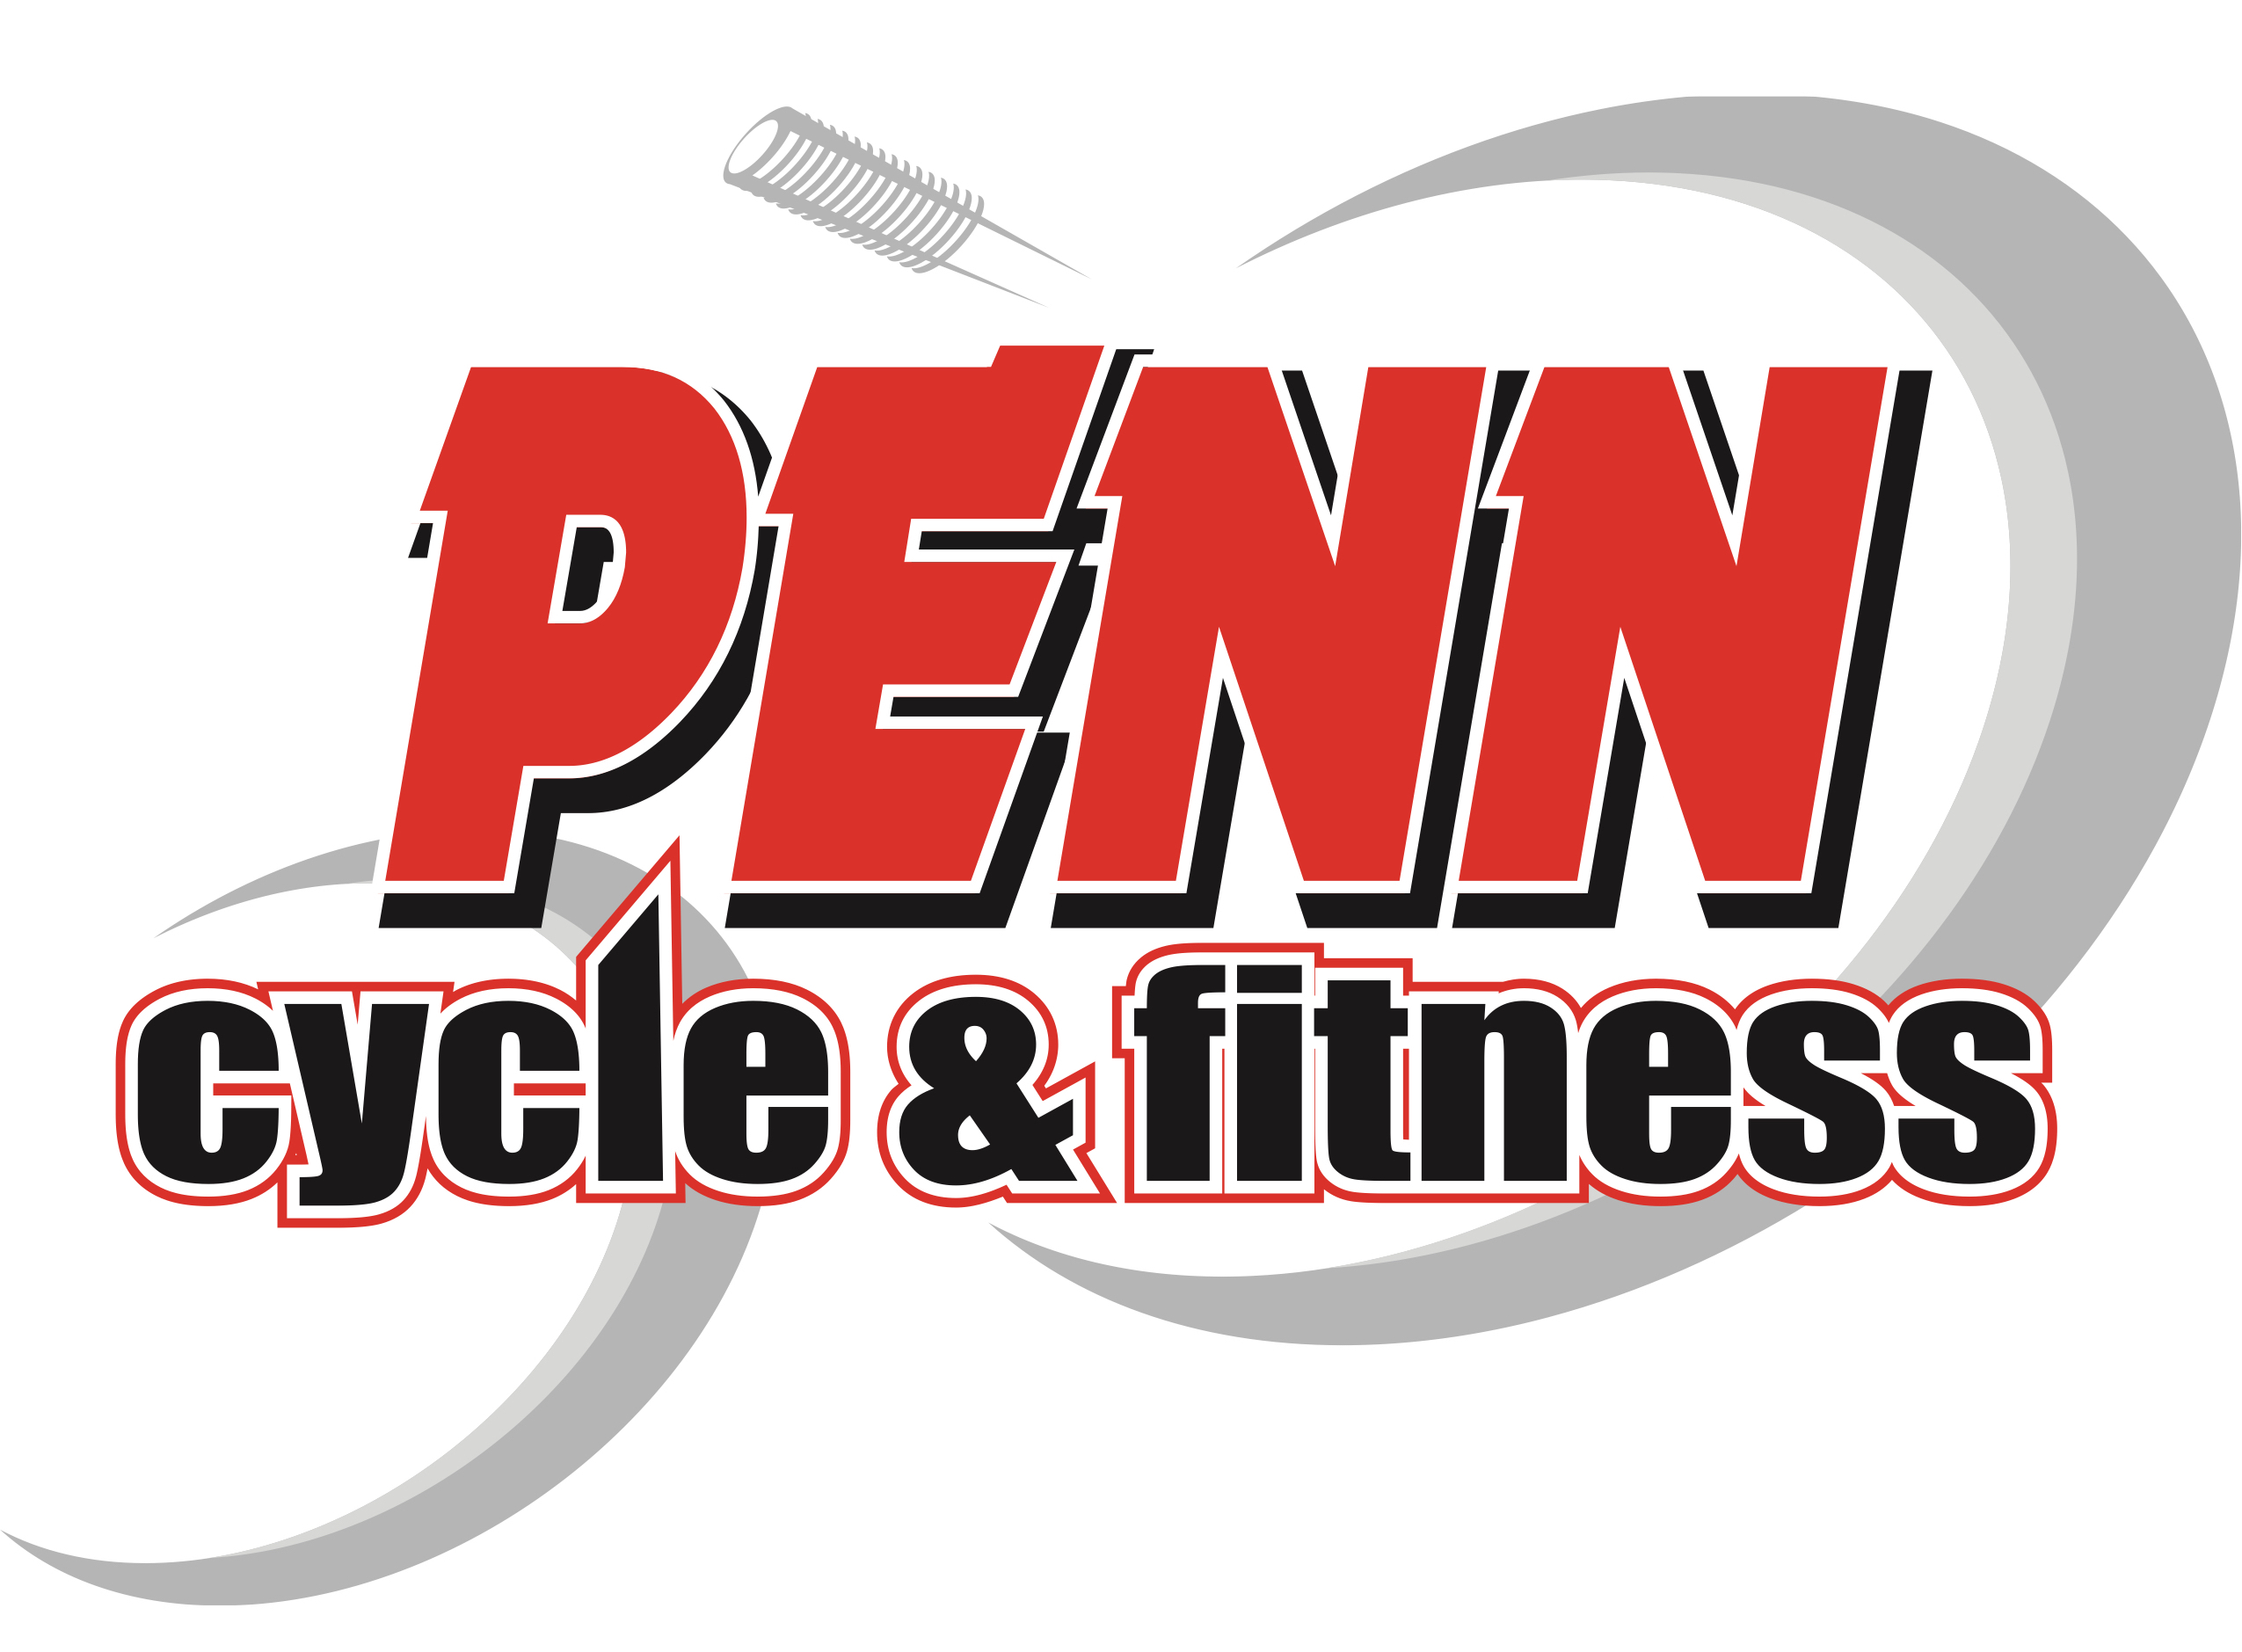 PennCycle_logo-2.jpg